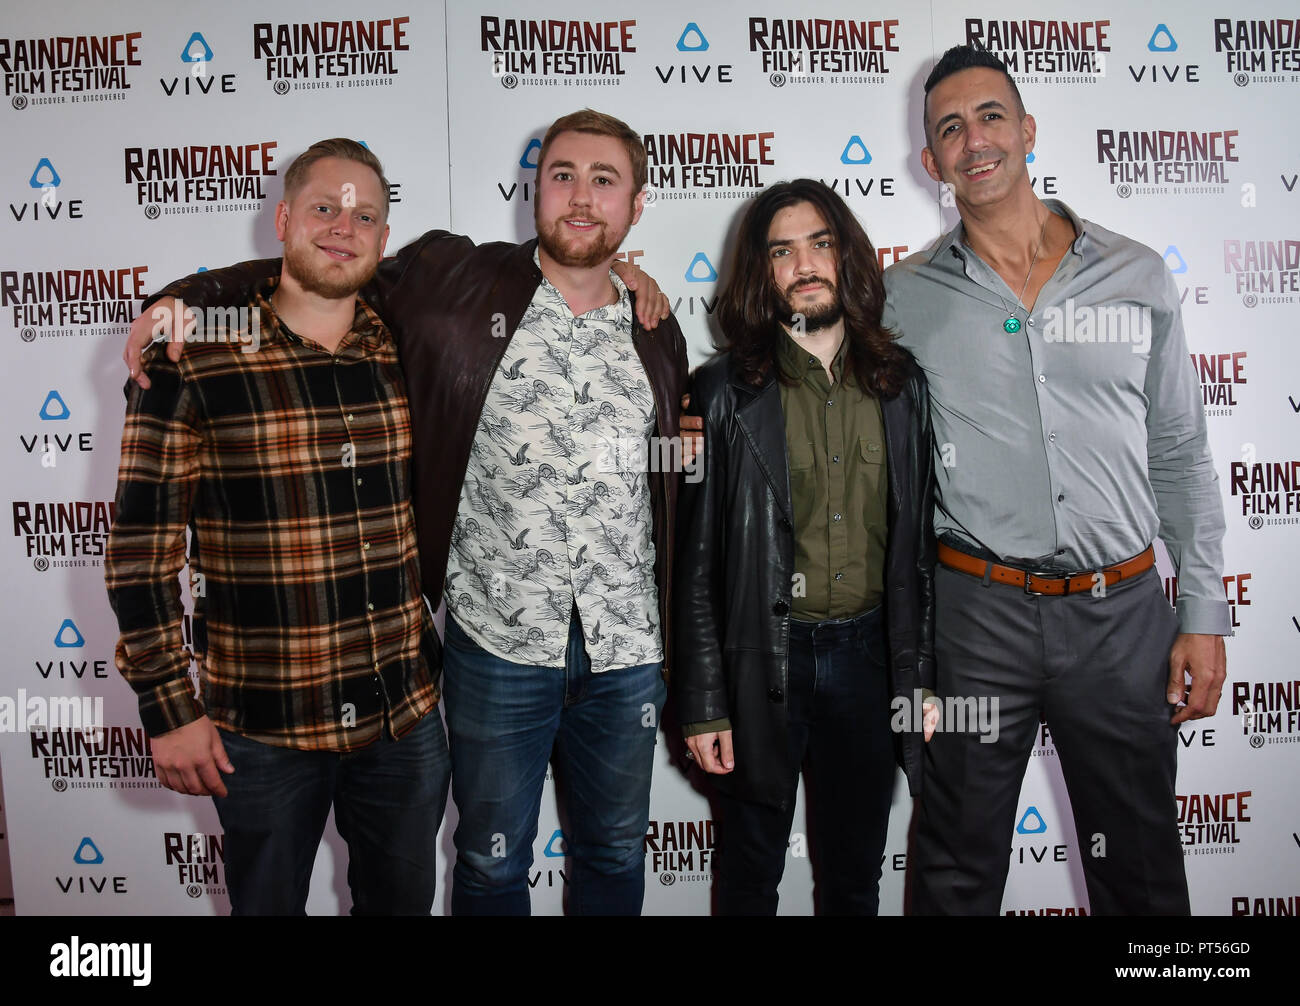 London, UK. 6th October 2018. Nothing Like You Production's - The Archivist:VR Nominated attends the Raindance Film Festival - VR Awards, London, UK. 6 October 2018. Credit: Picture Capital/Alamy Live News - Stock Image